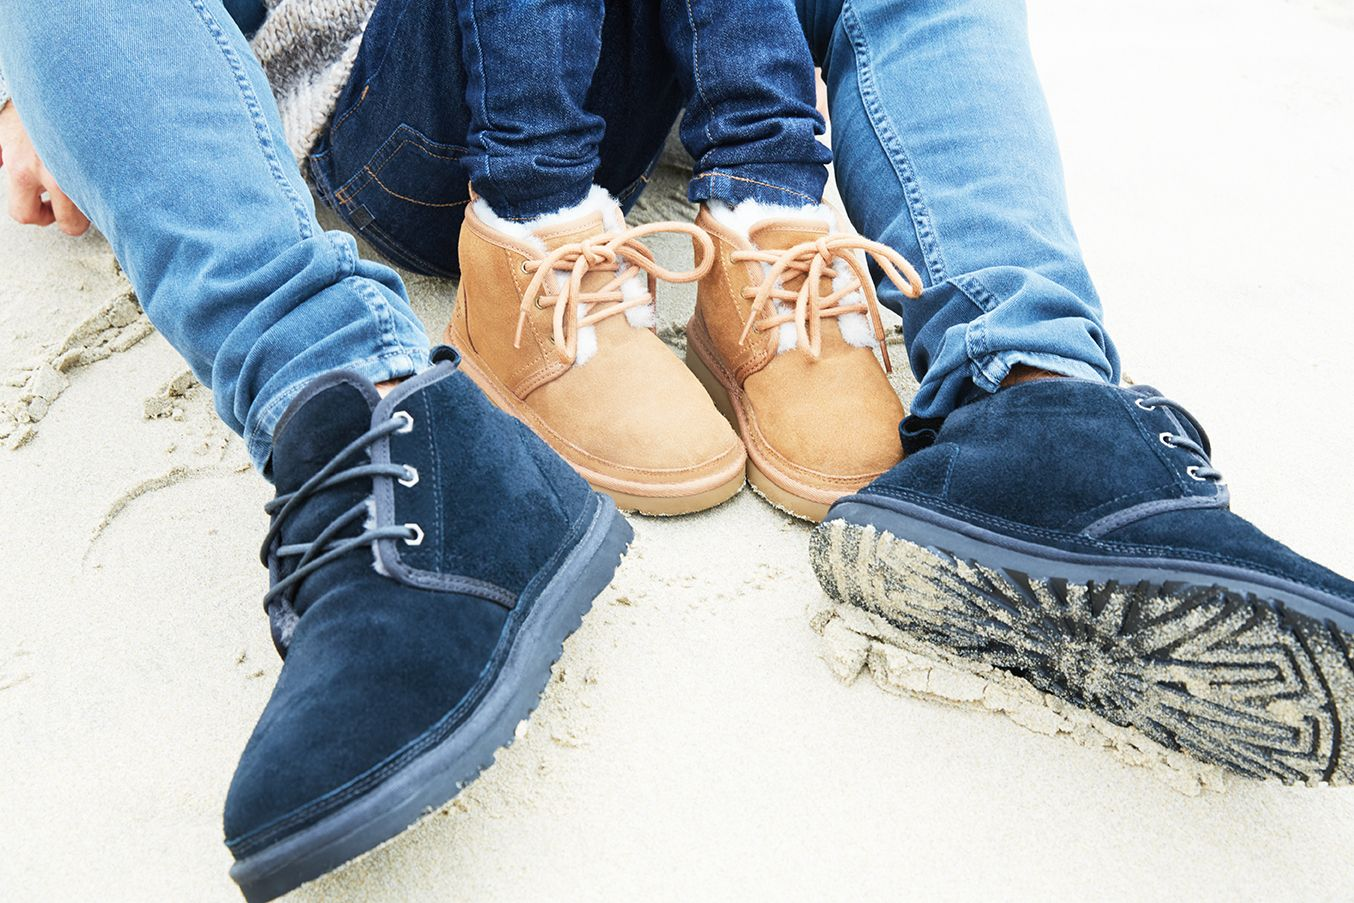 1a2c51a0438 Matching Neumel boots because Dad knows best! | MINI. | Kids ugg ...